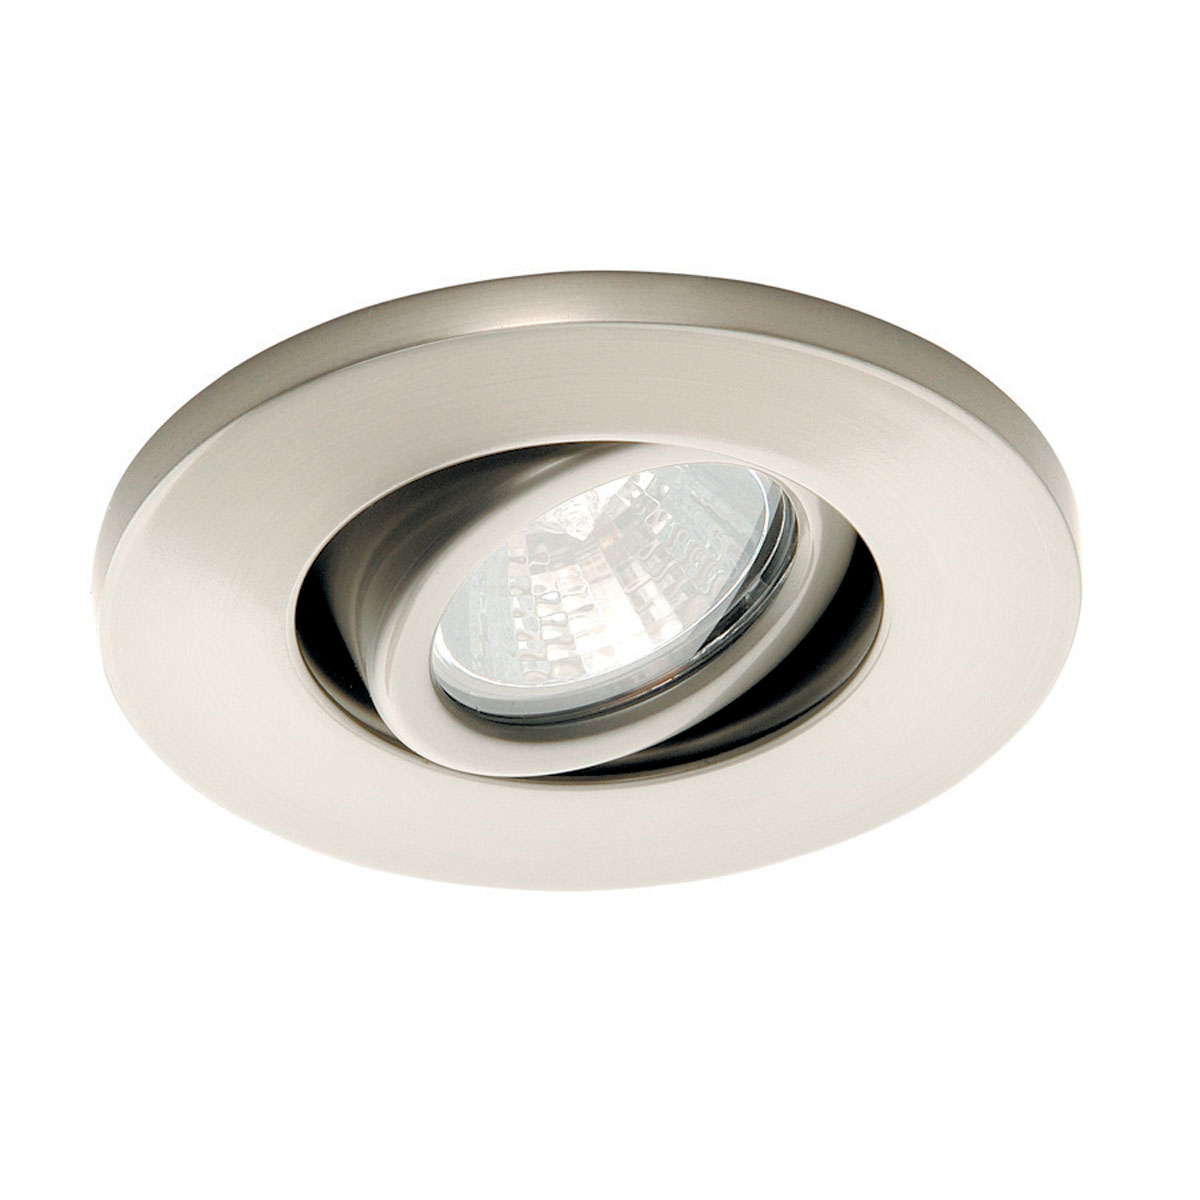 Hr1137 Gimbal Ring Miniature Recessed Task Light By Wac